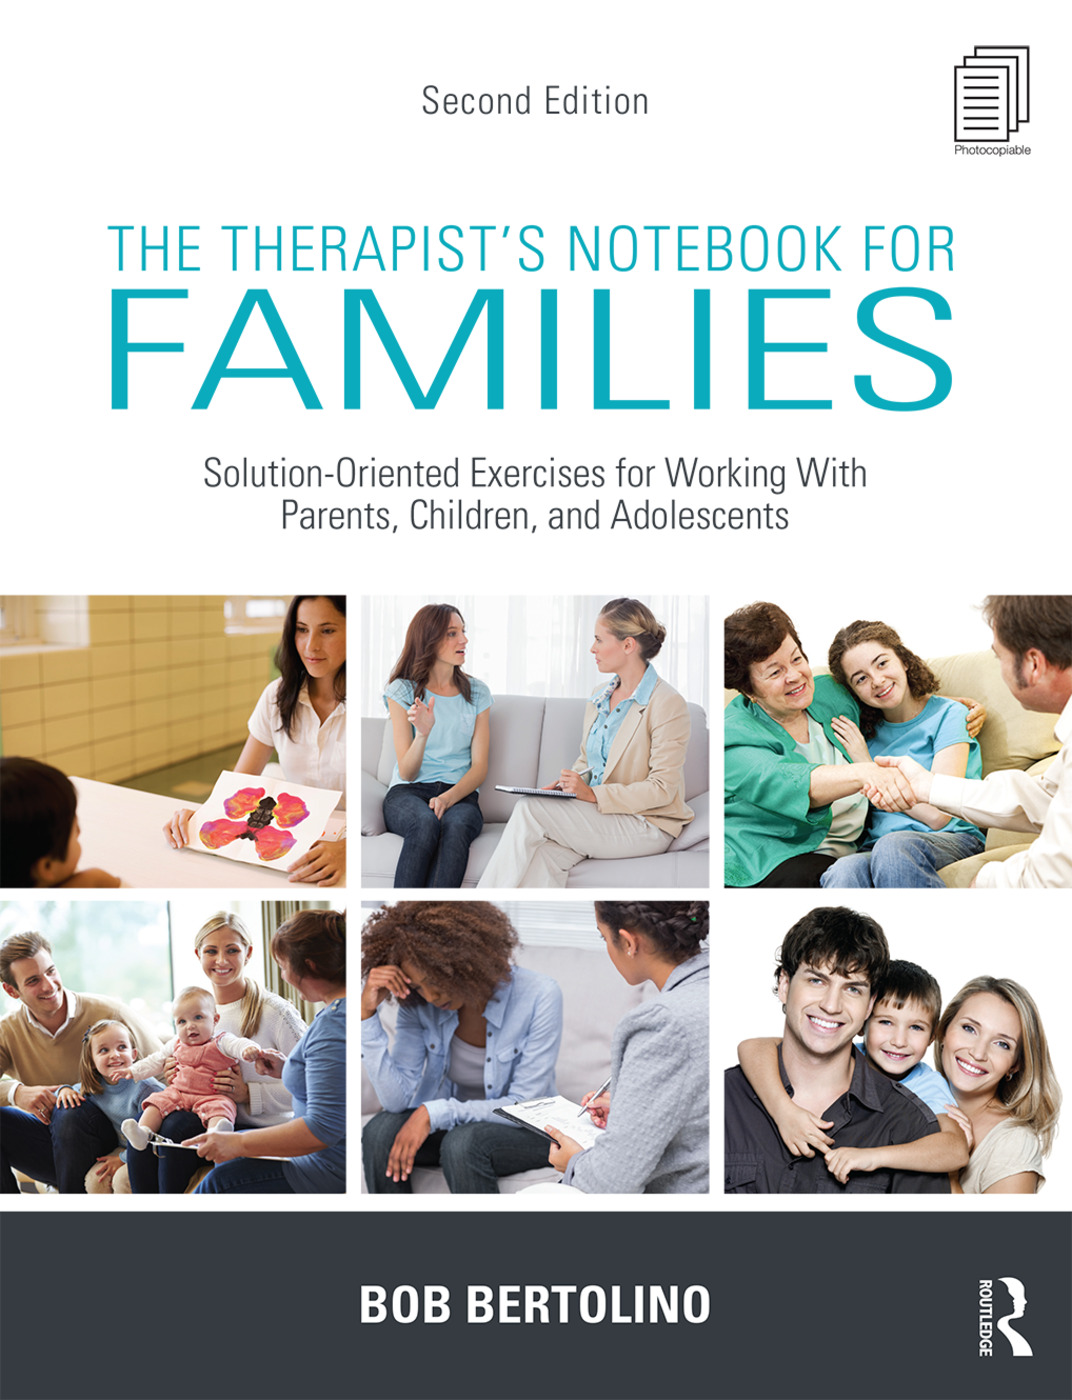 The Therapist's Notebook for Families: Solution-Oriented Exercises for Working With Parents, Children, and Adolescents book cover